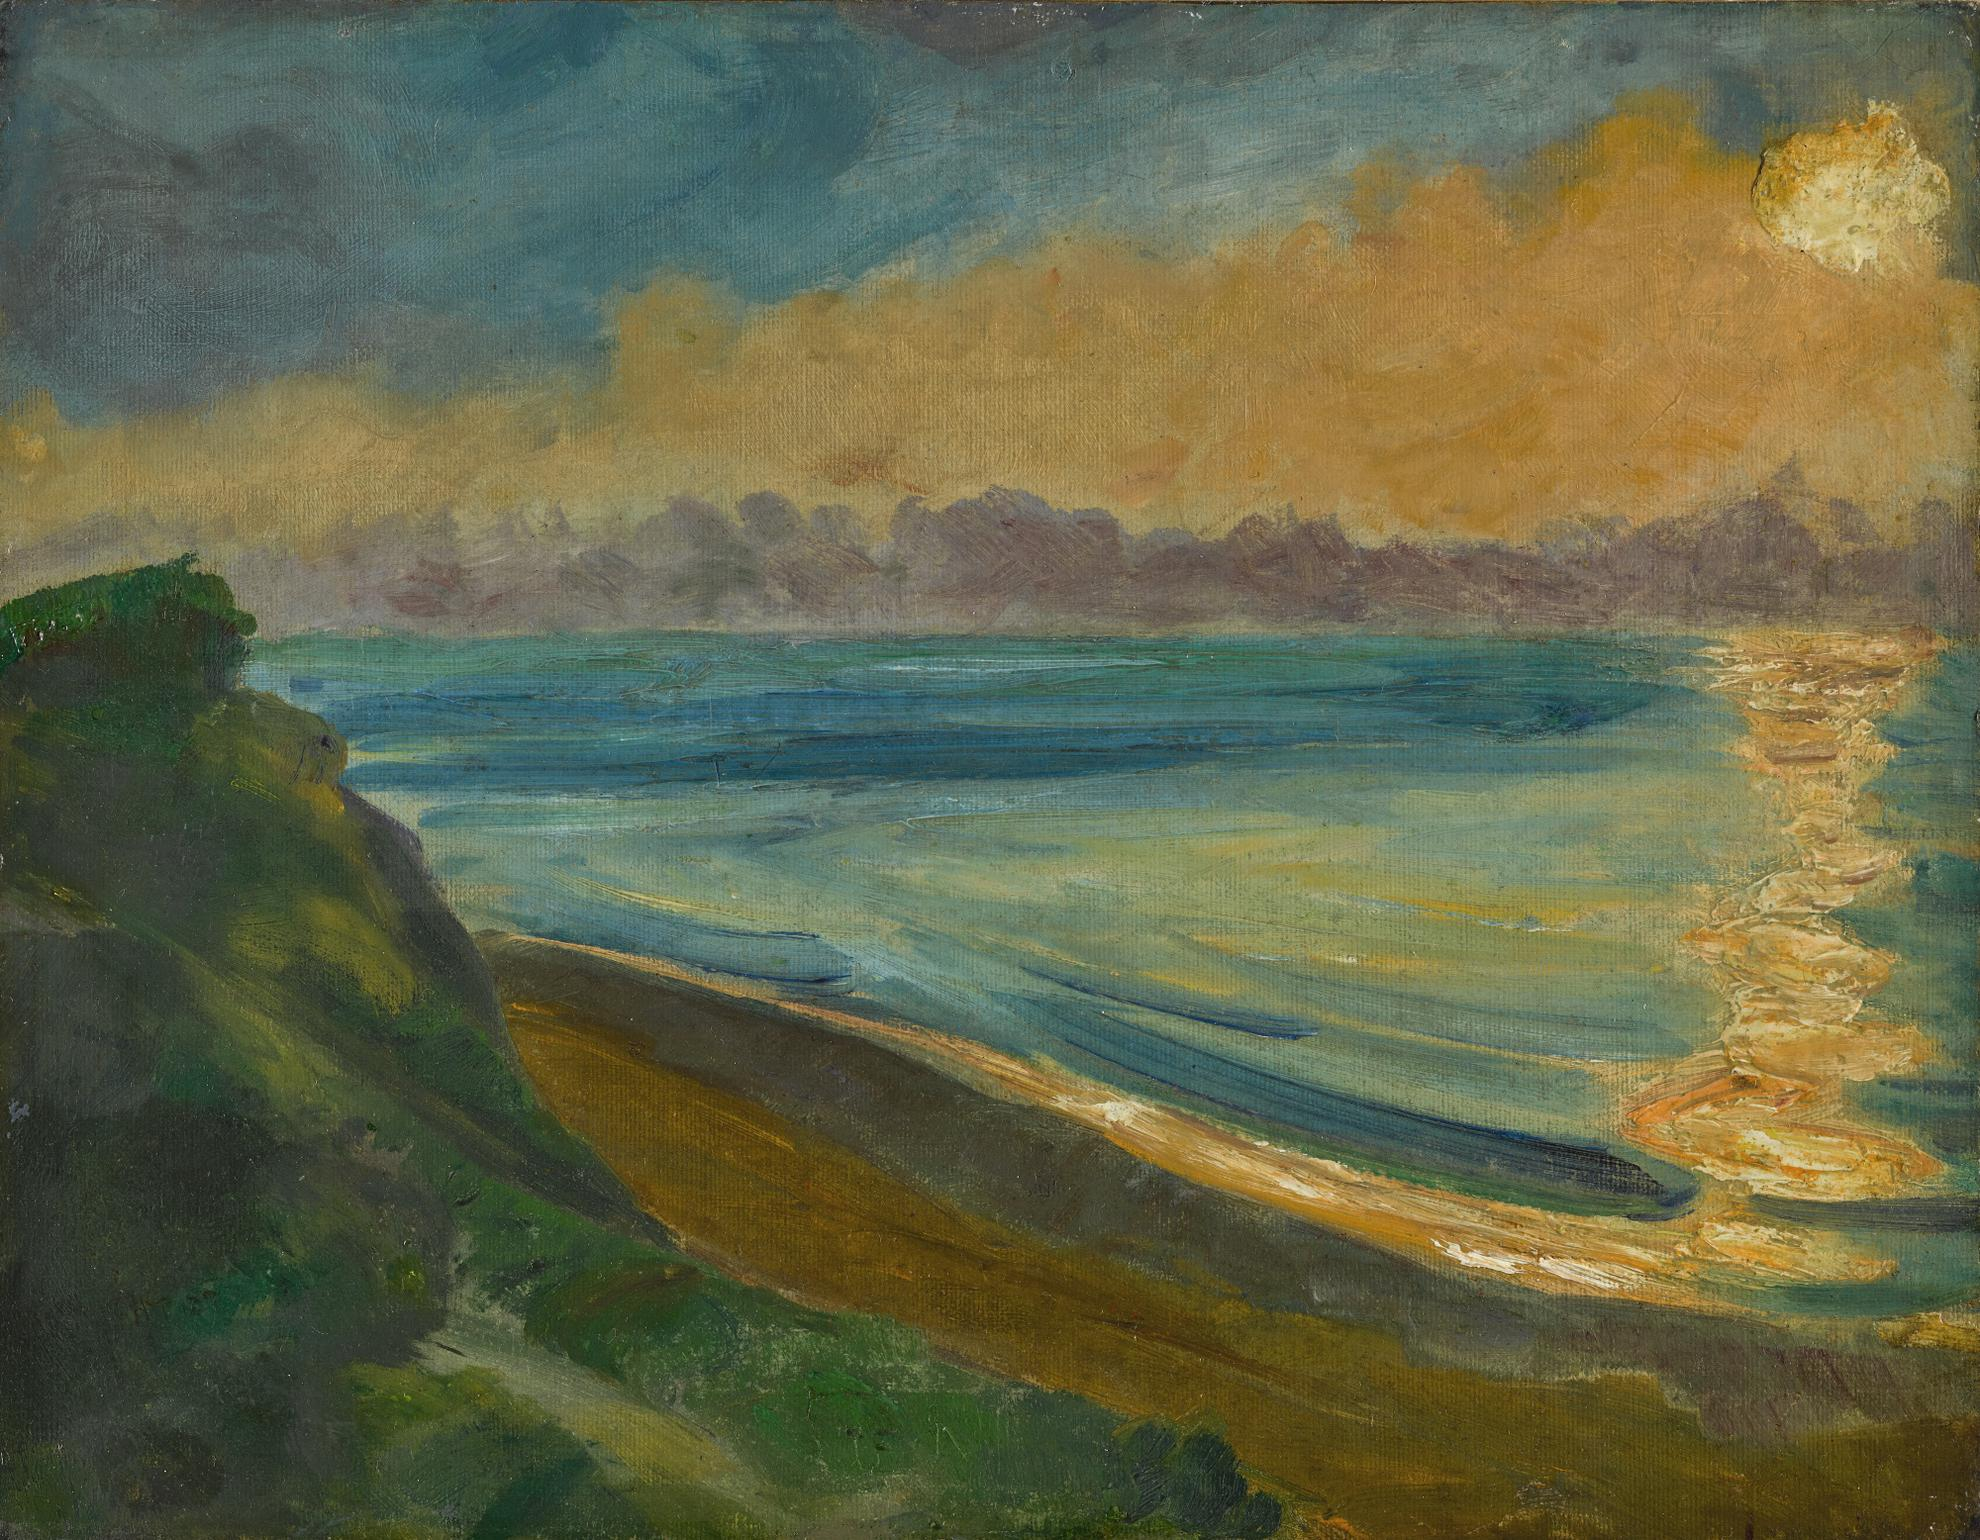 Max Pechstein-Steilkuste Und Sonnenspiegelung (Steep Coast And Sun Reflection)-1922